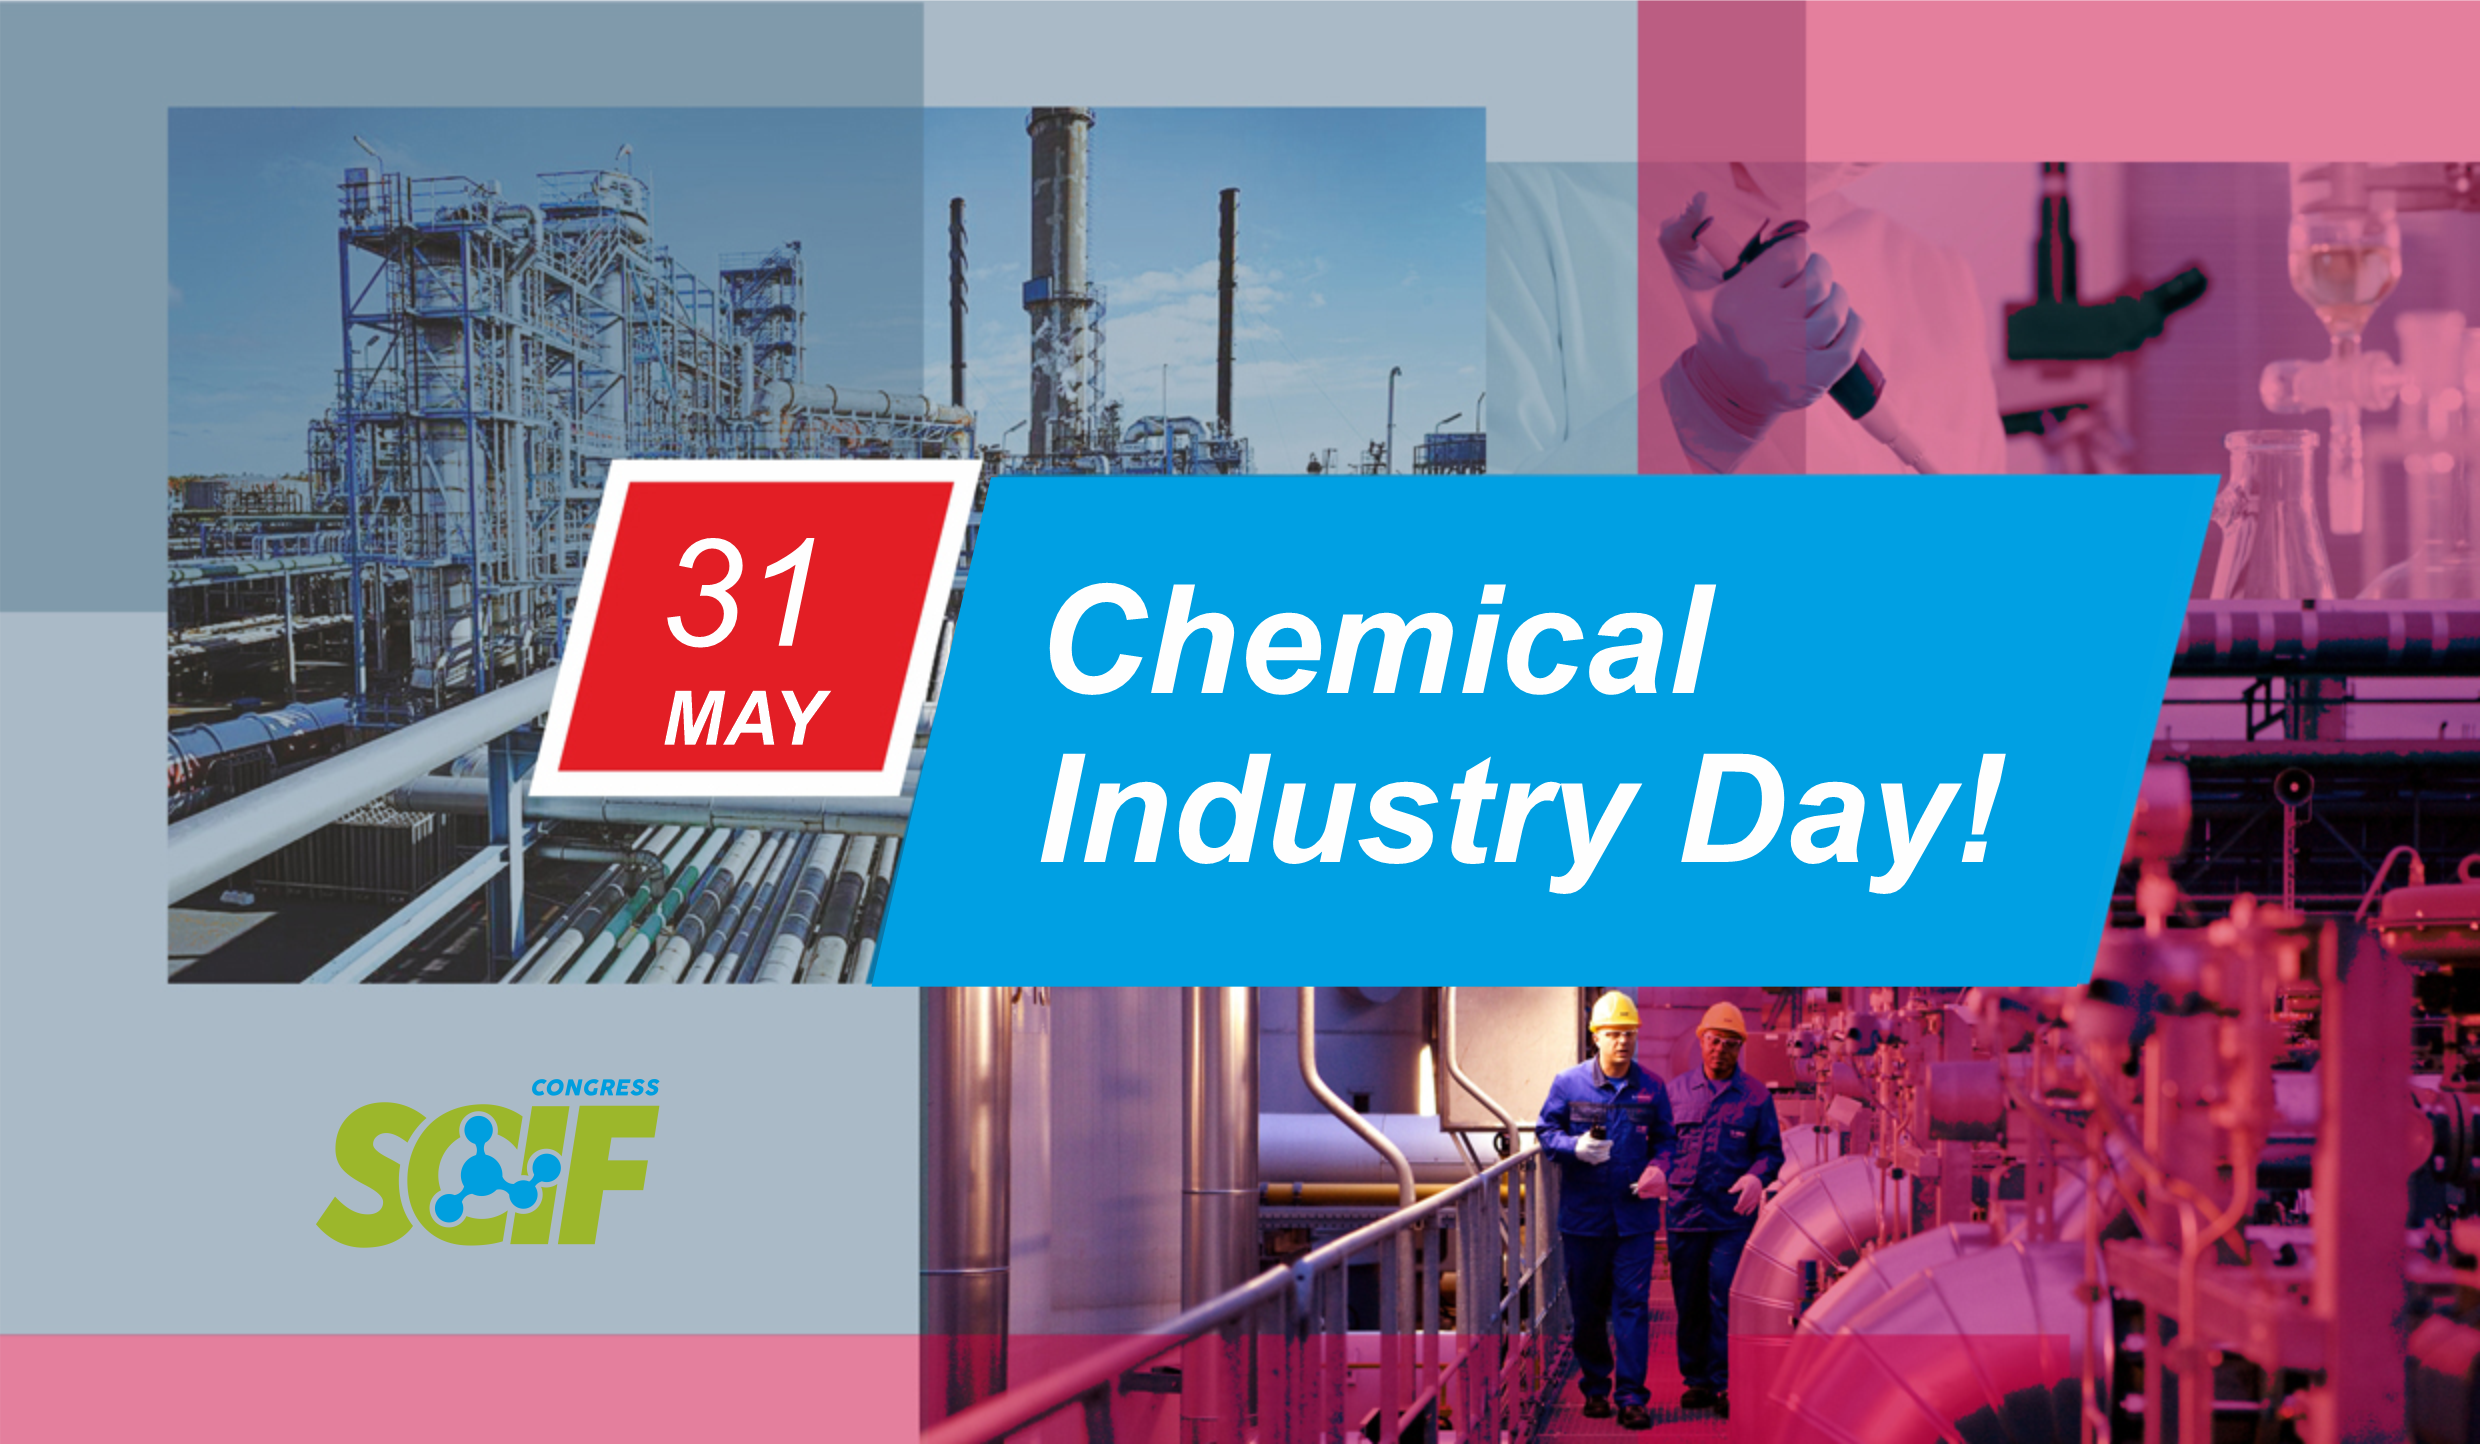 Congratulations on Chemical Industry Day!